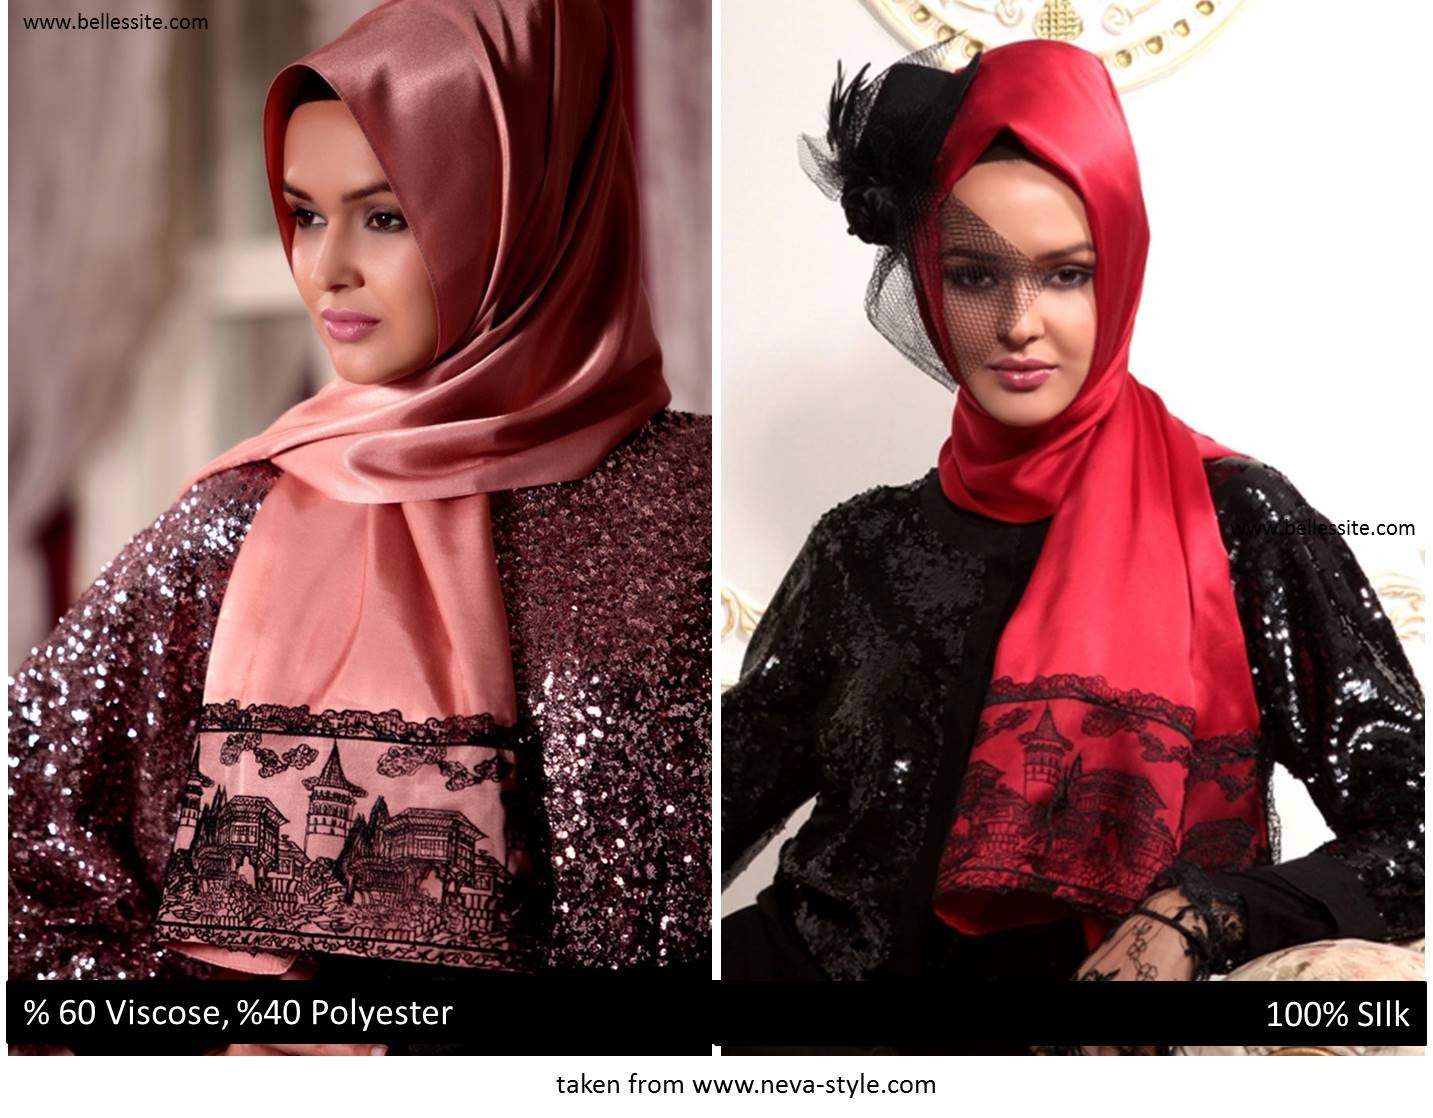 Shop And Drop In The Belles Site Review Jilbab Viscose 100